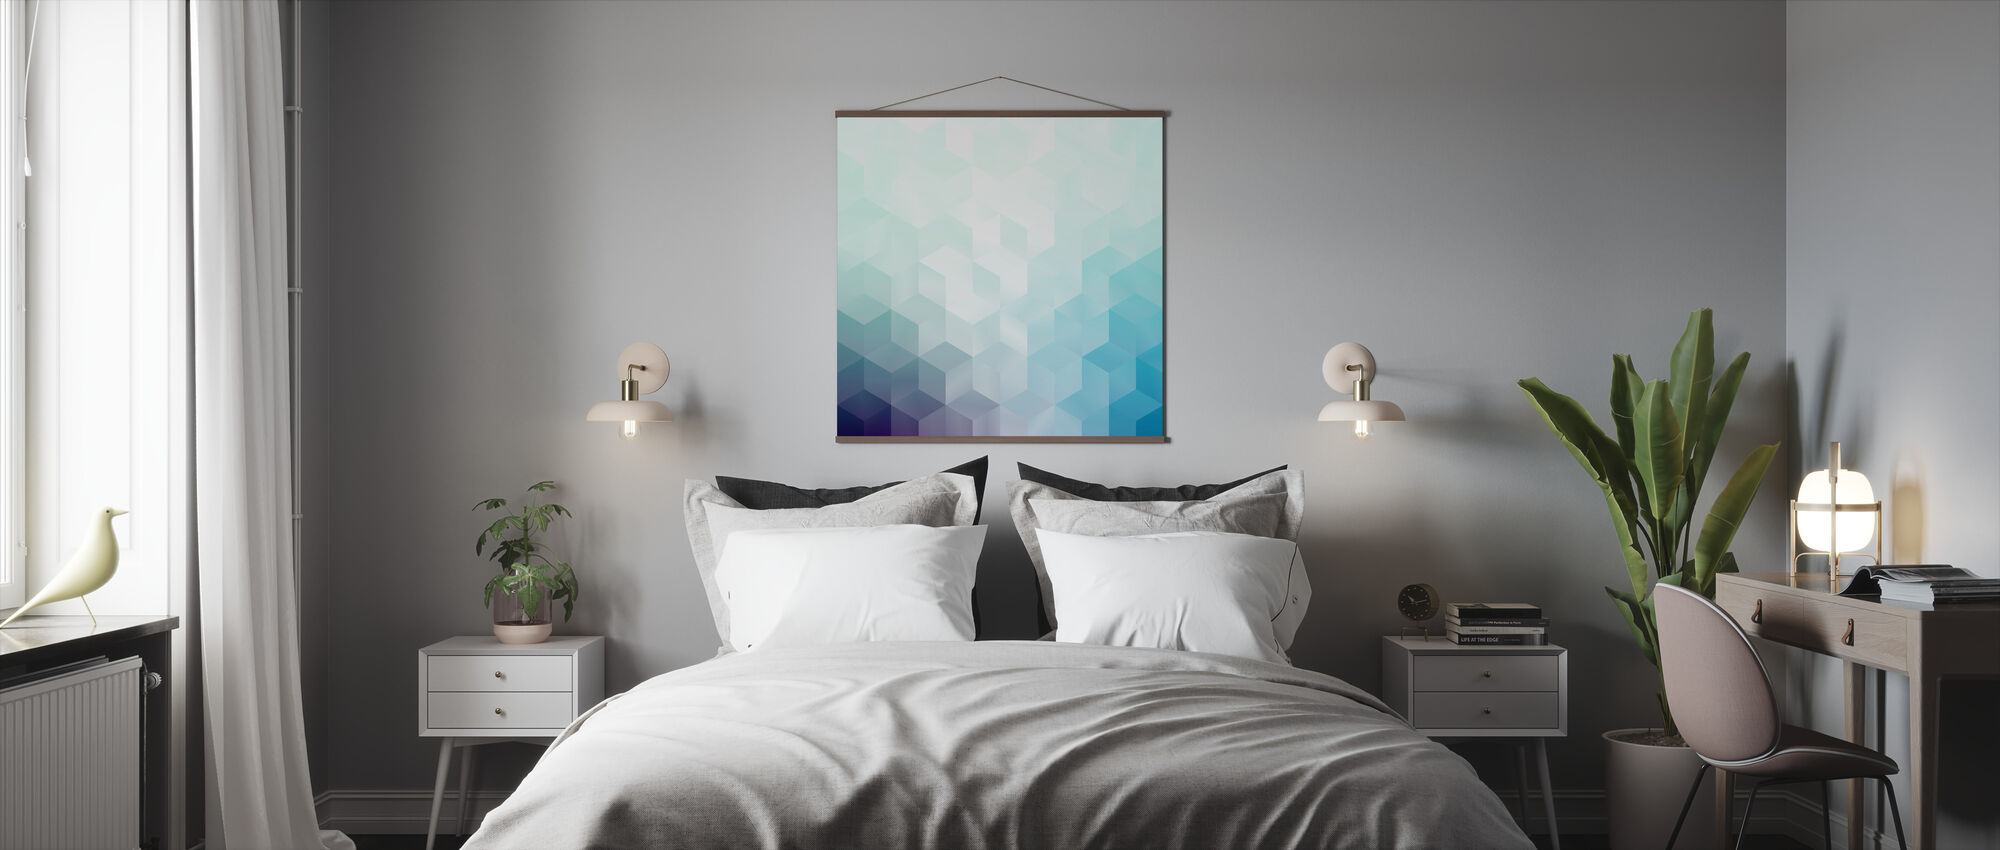 Cool Abstract Pattern - Poster - Bedroom